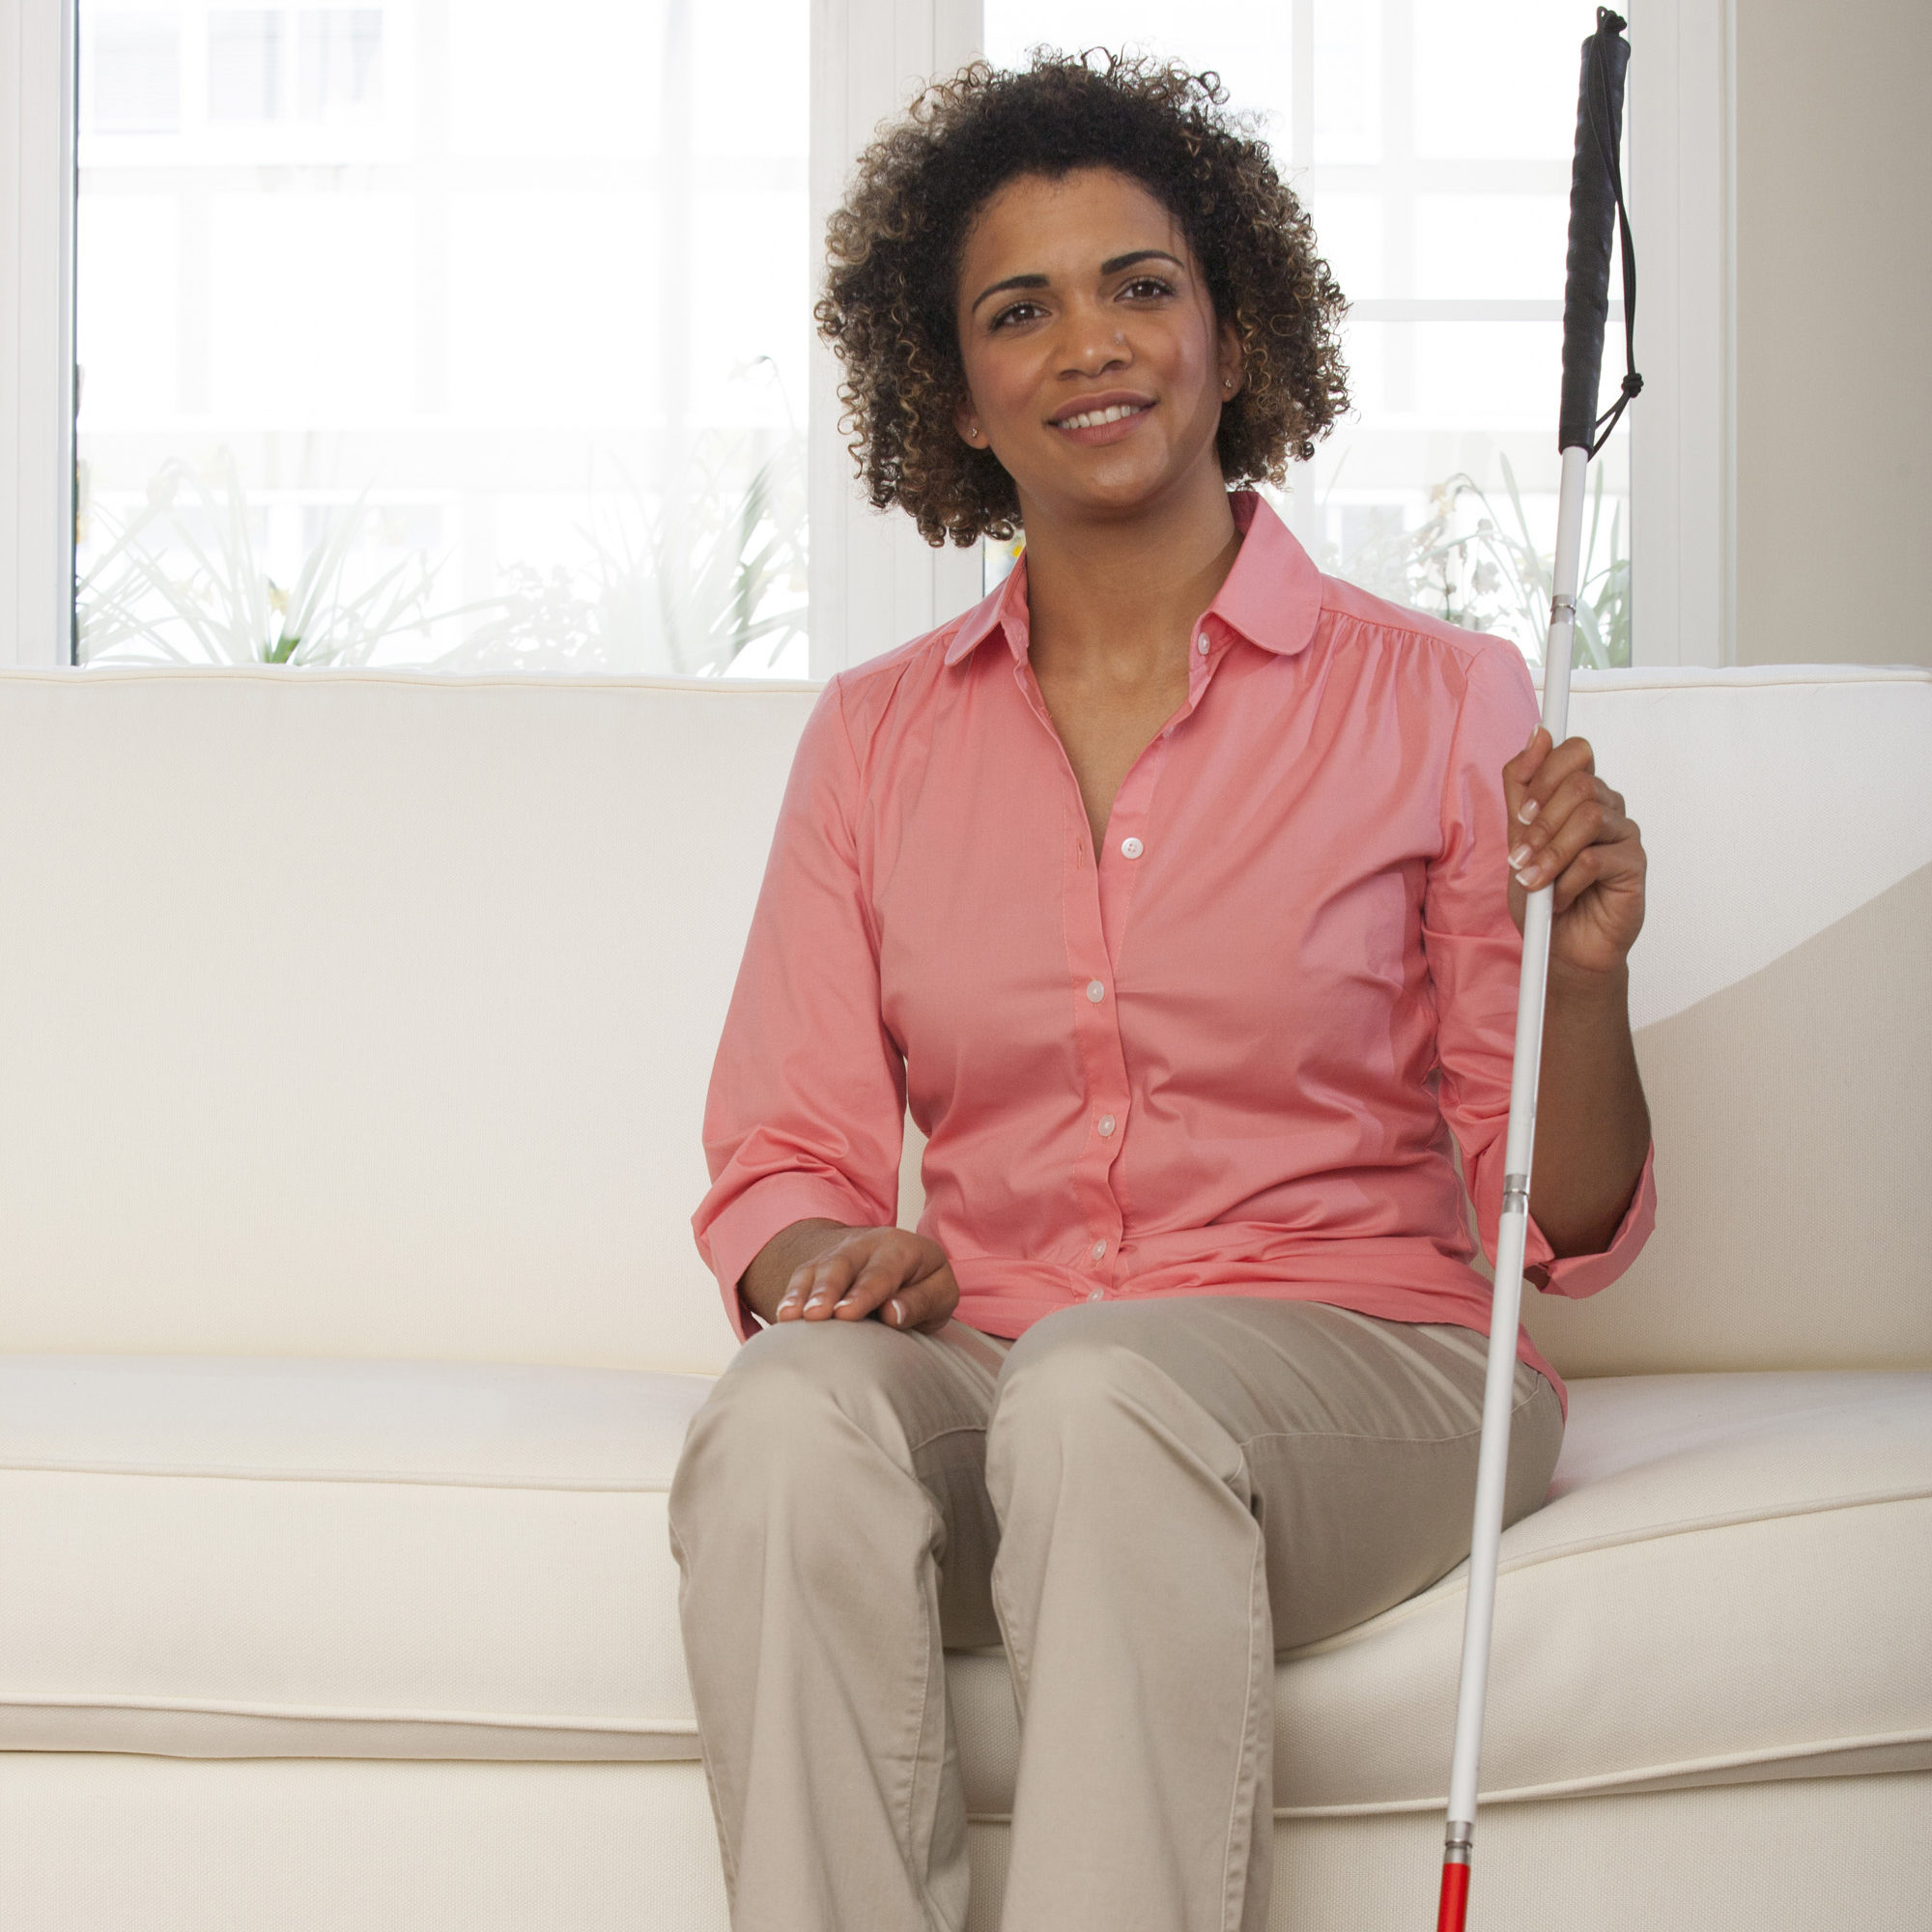 Disabled person at home with walking stick